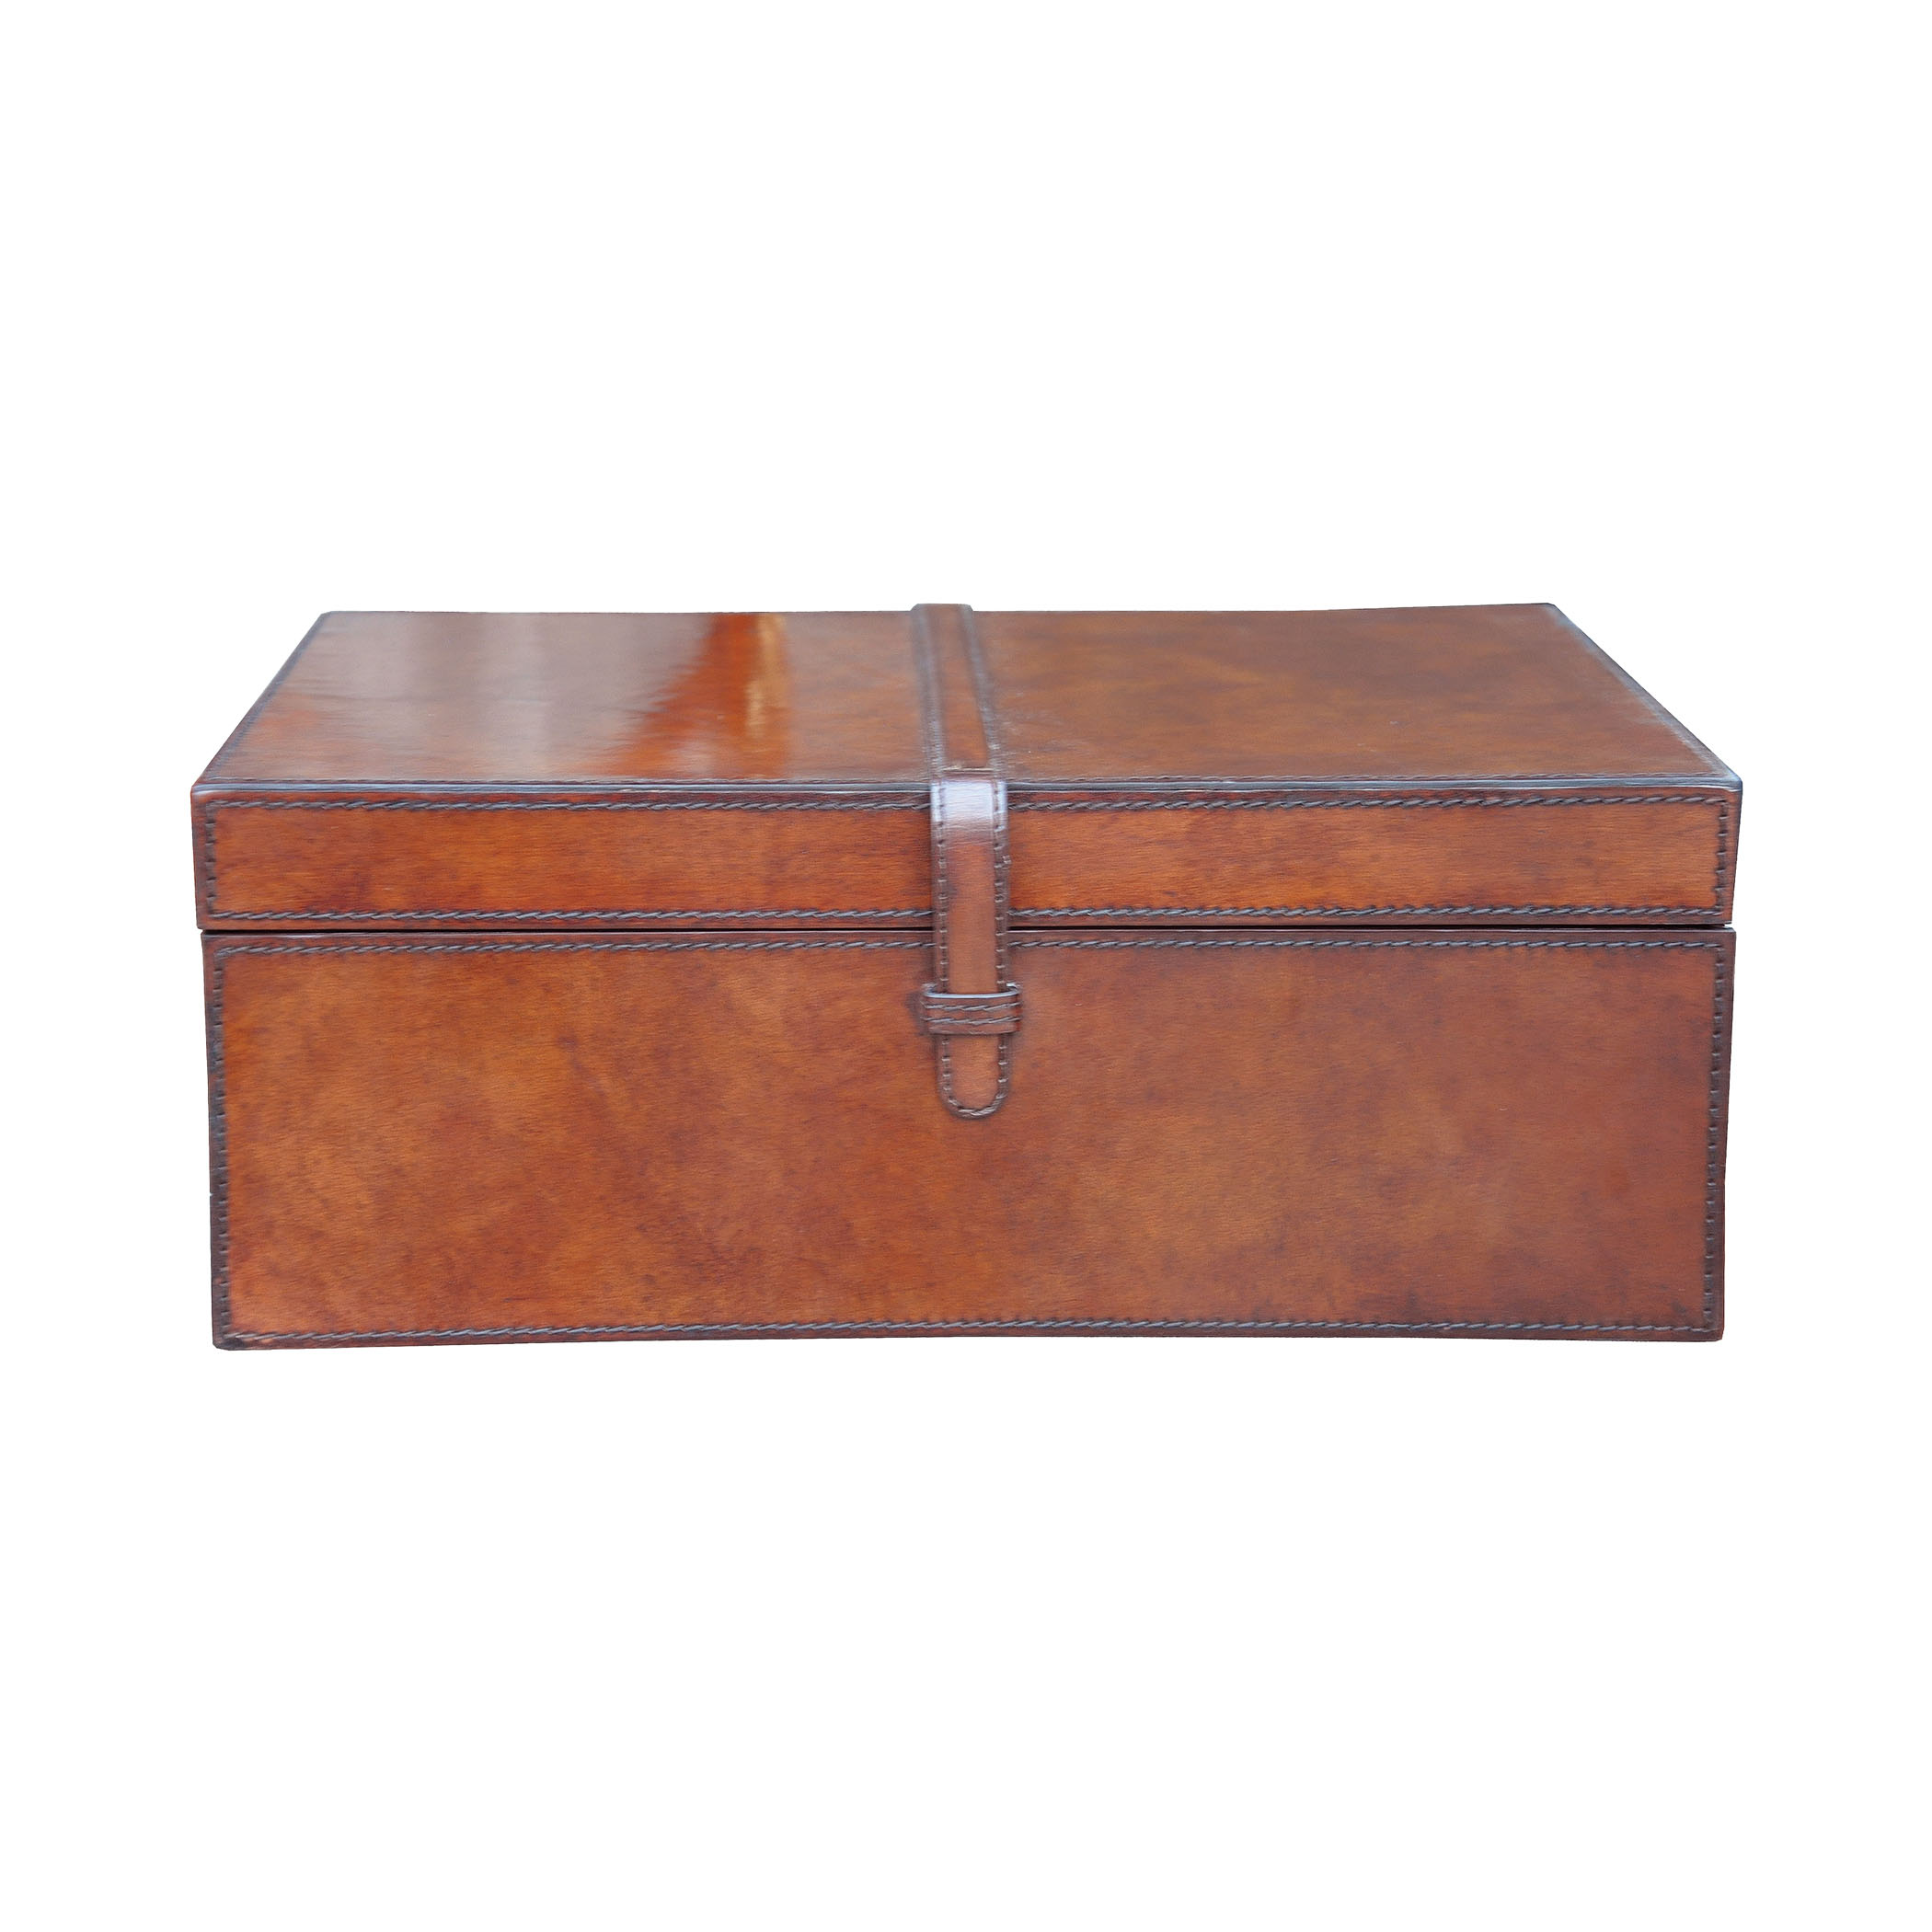 Elk Lighting Guild Master Large Stitched Leather Box 8819...